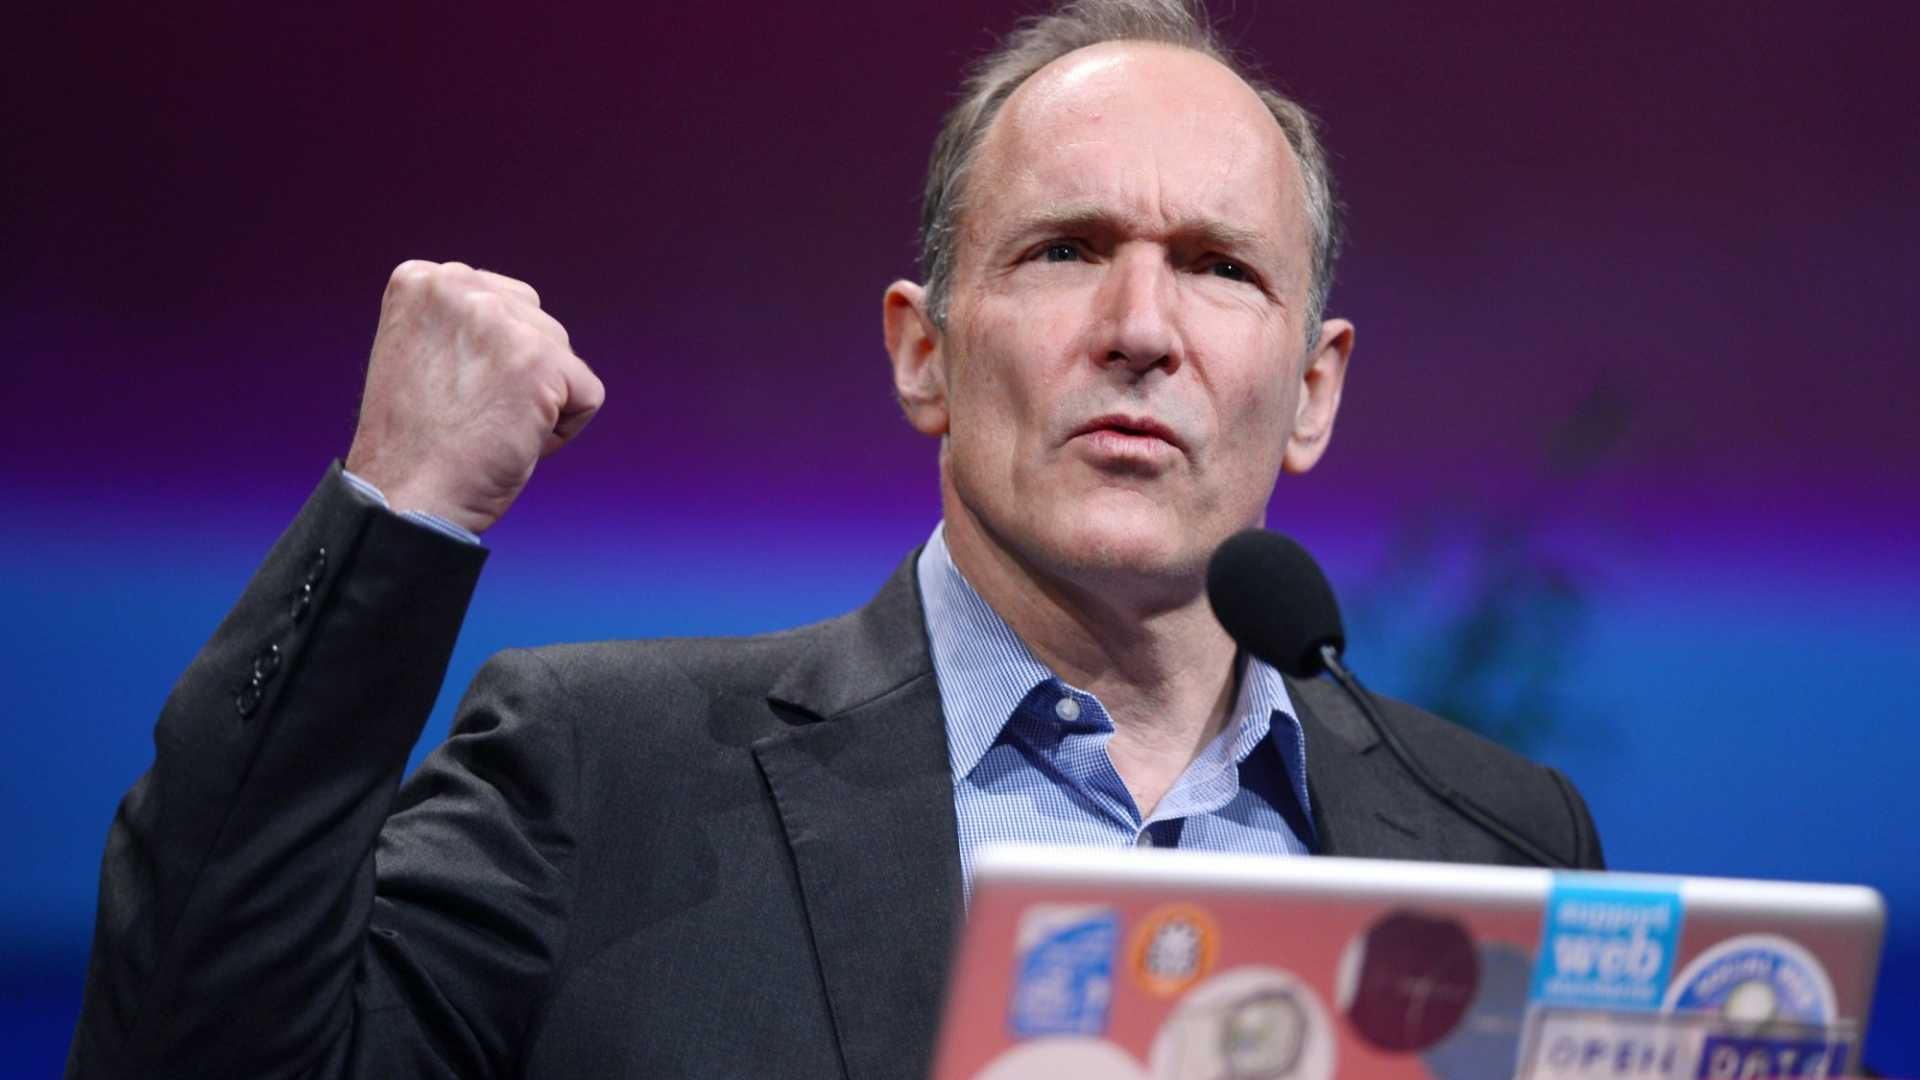 Tim Berners-Lee, the Inventor of the Web, Has Launched a New Startup